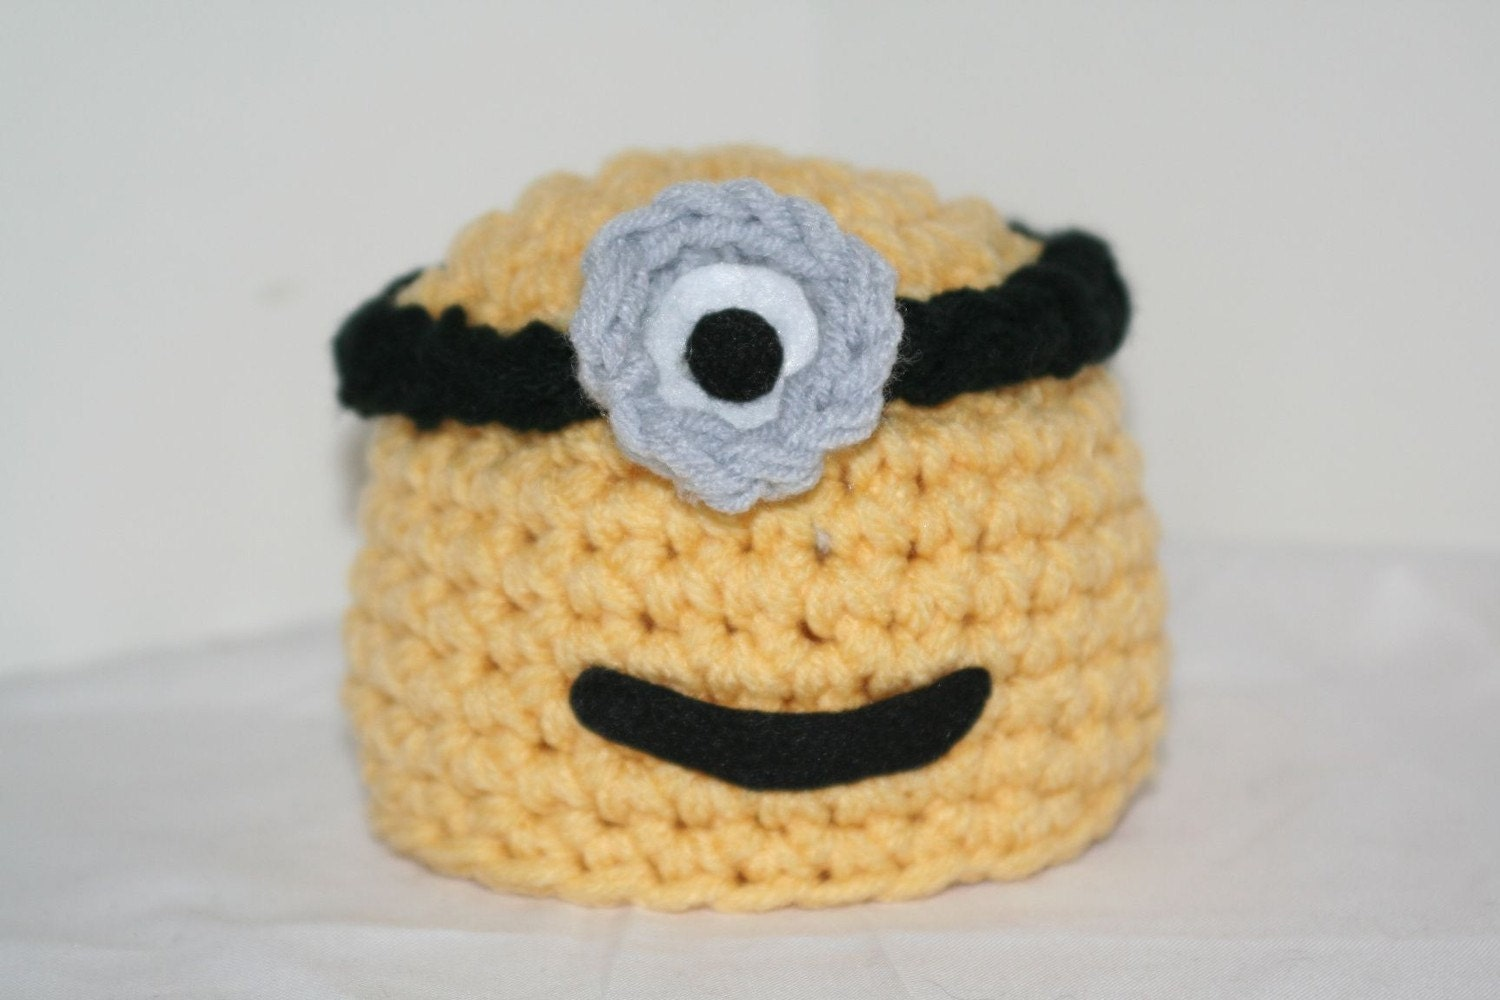 Newborn baby size handmade crocheted character hat - inspired by the Minions - can also be used as a photo prop